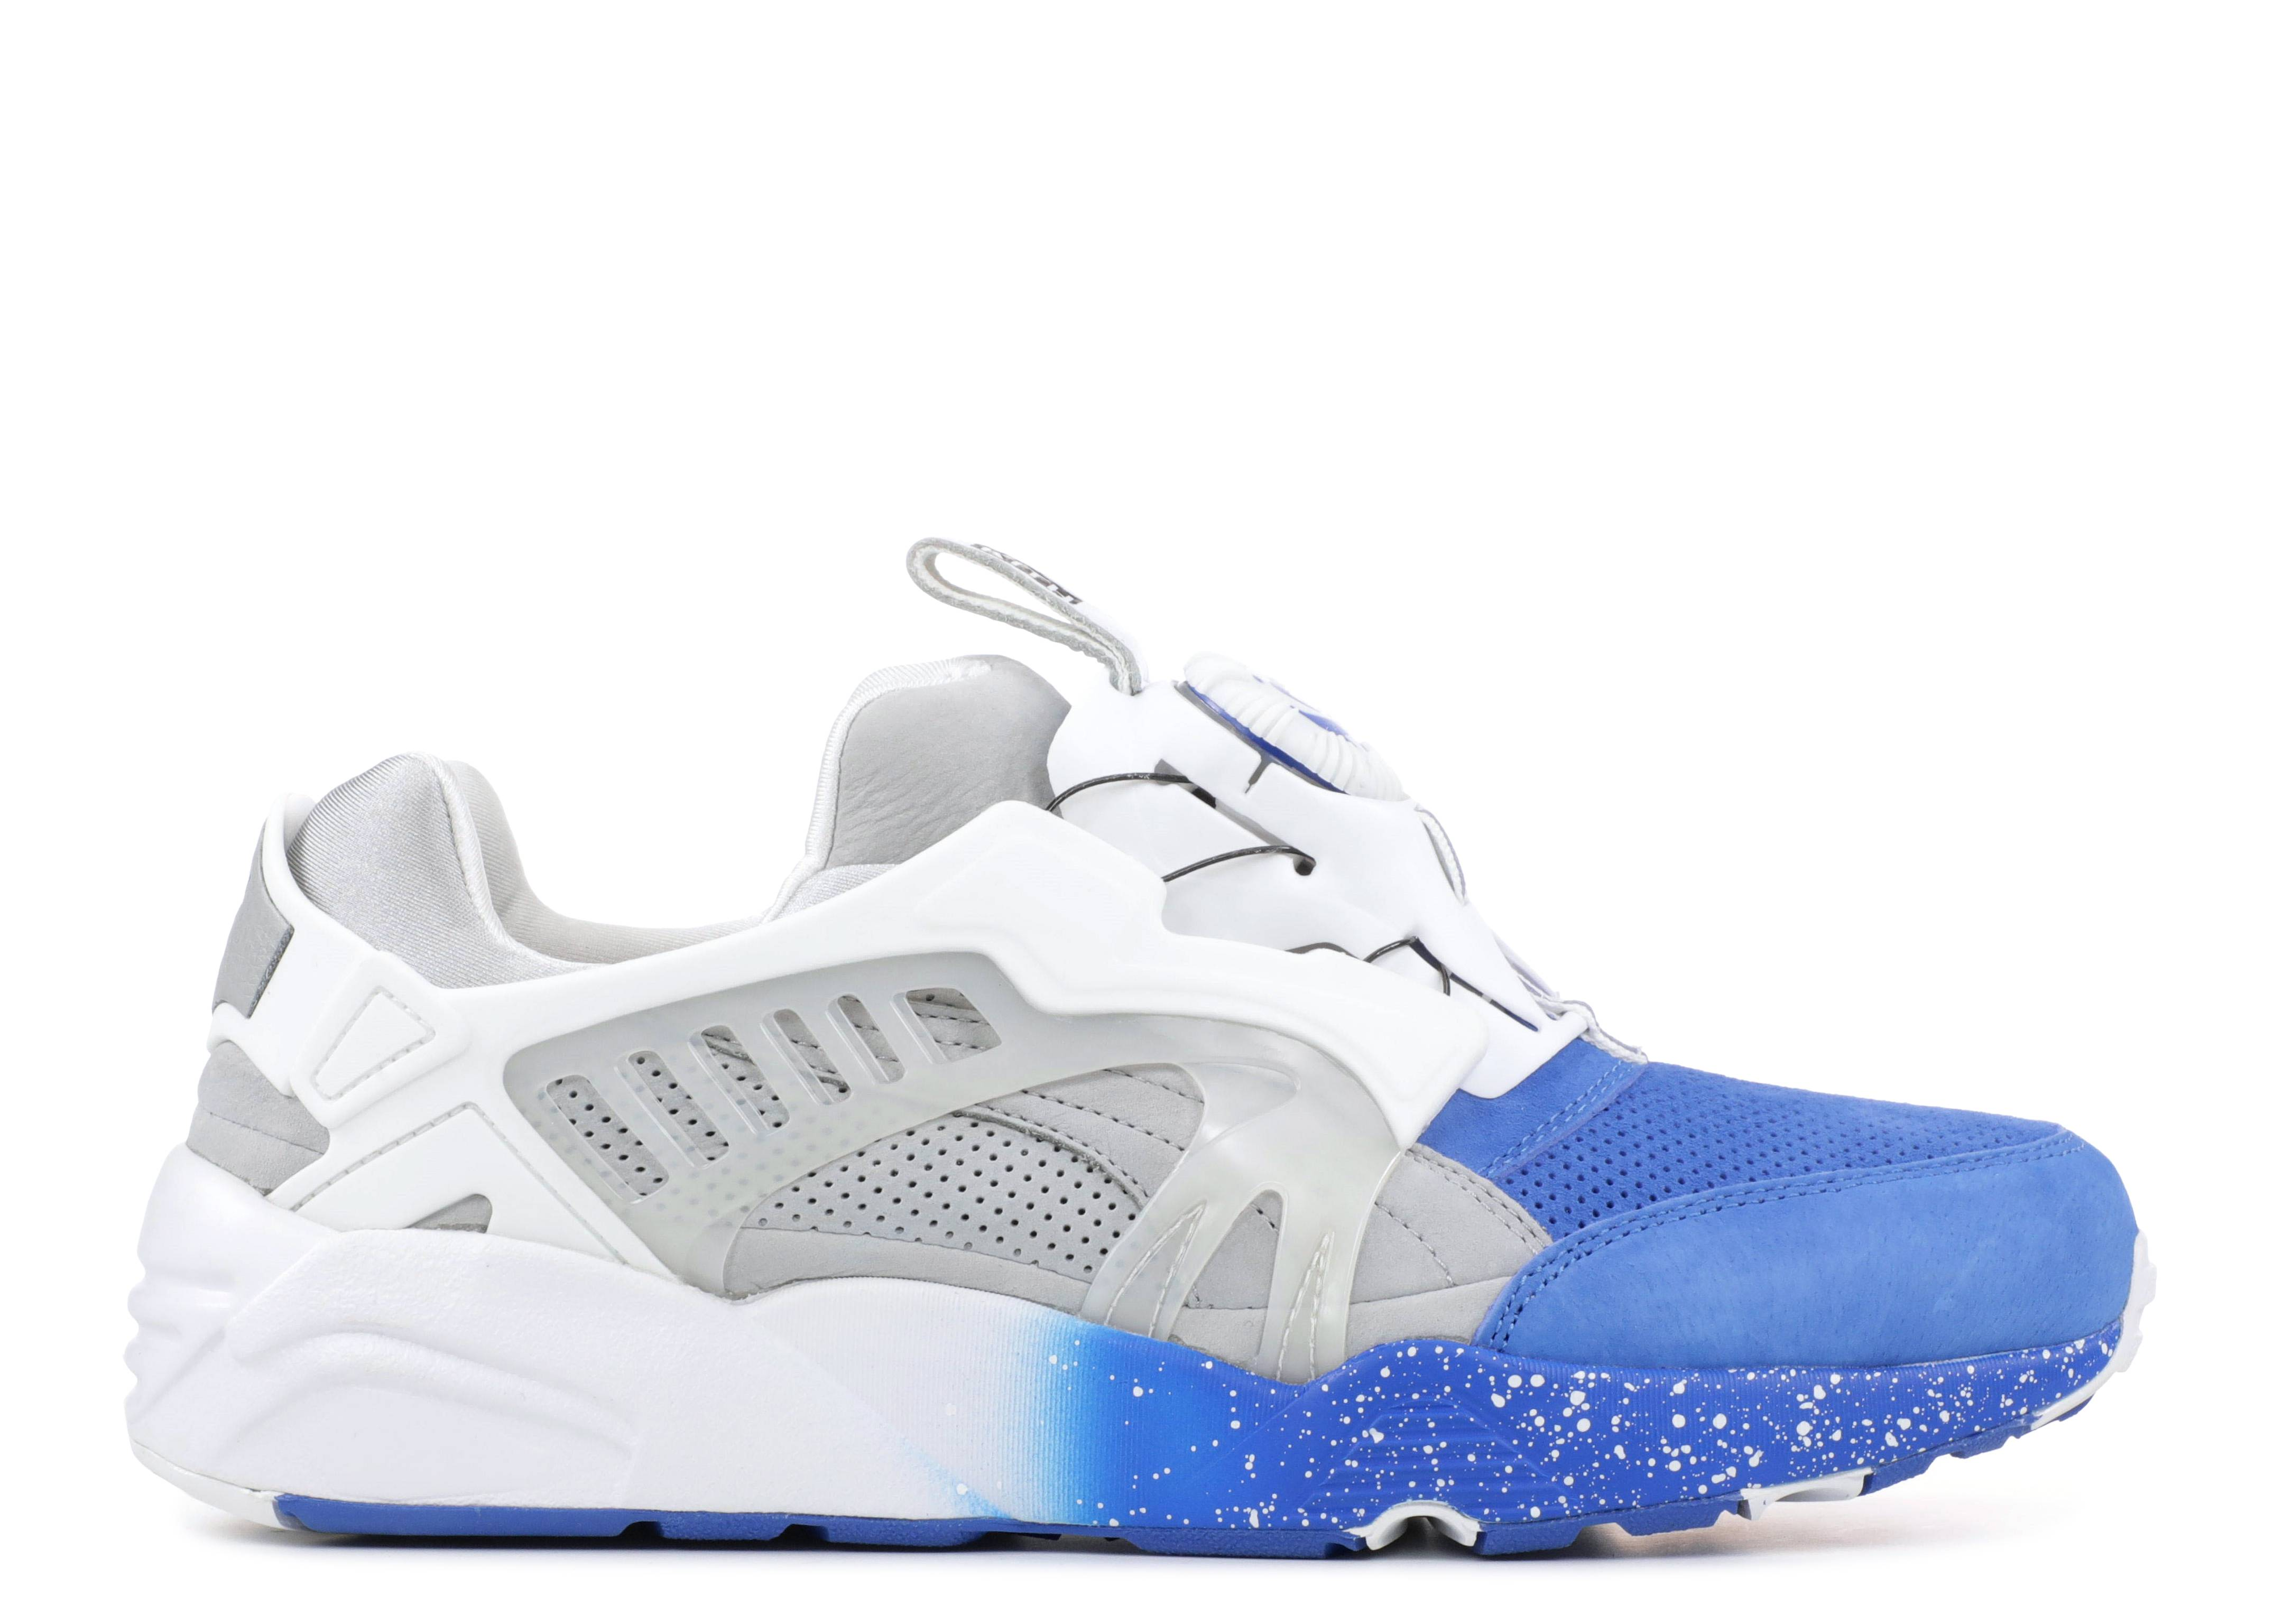 Colette disc x kith 1